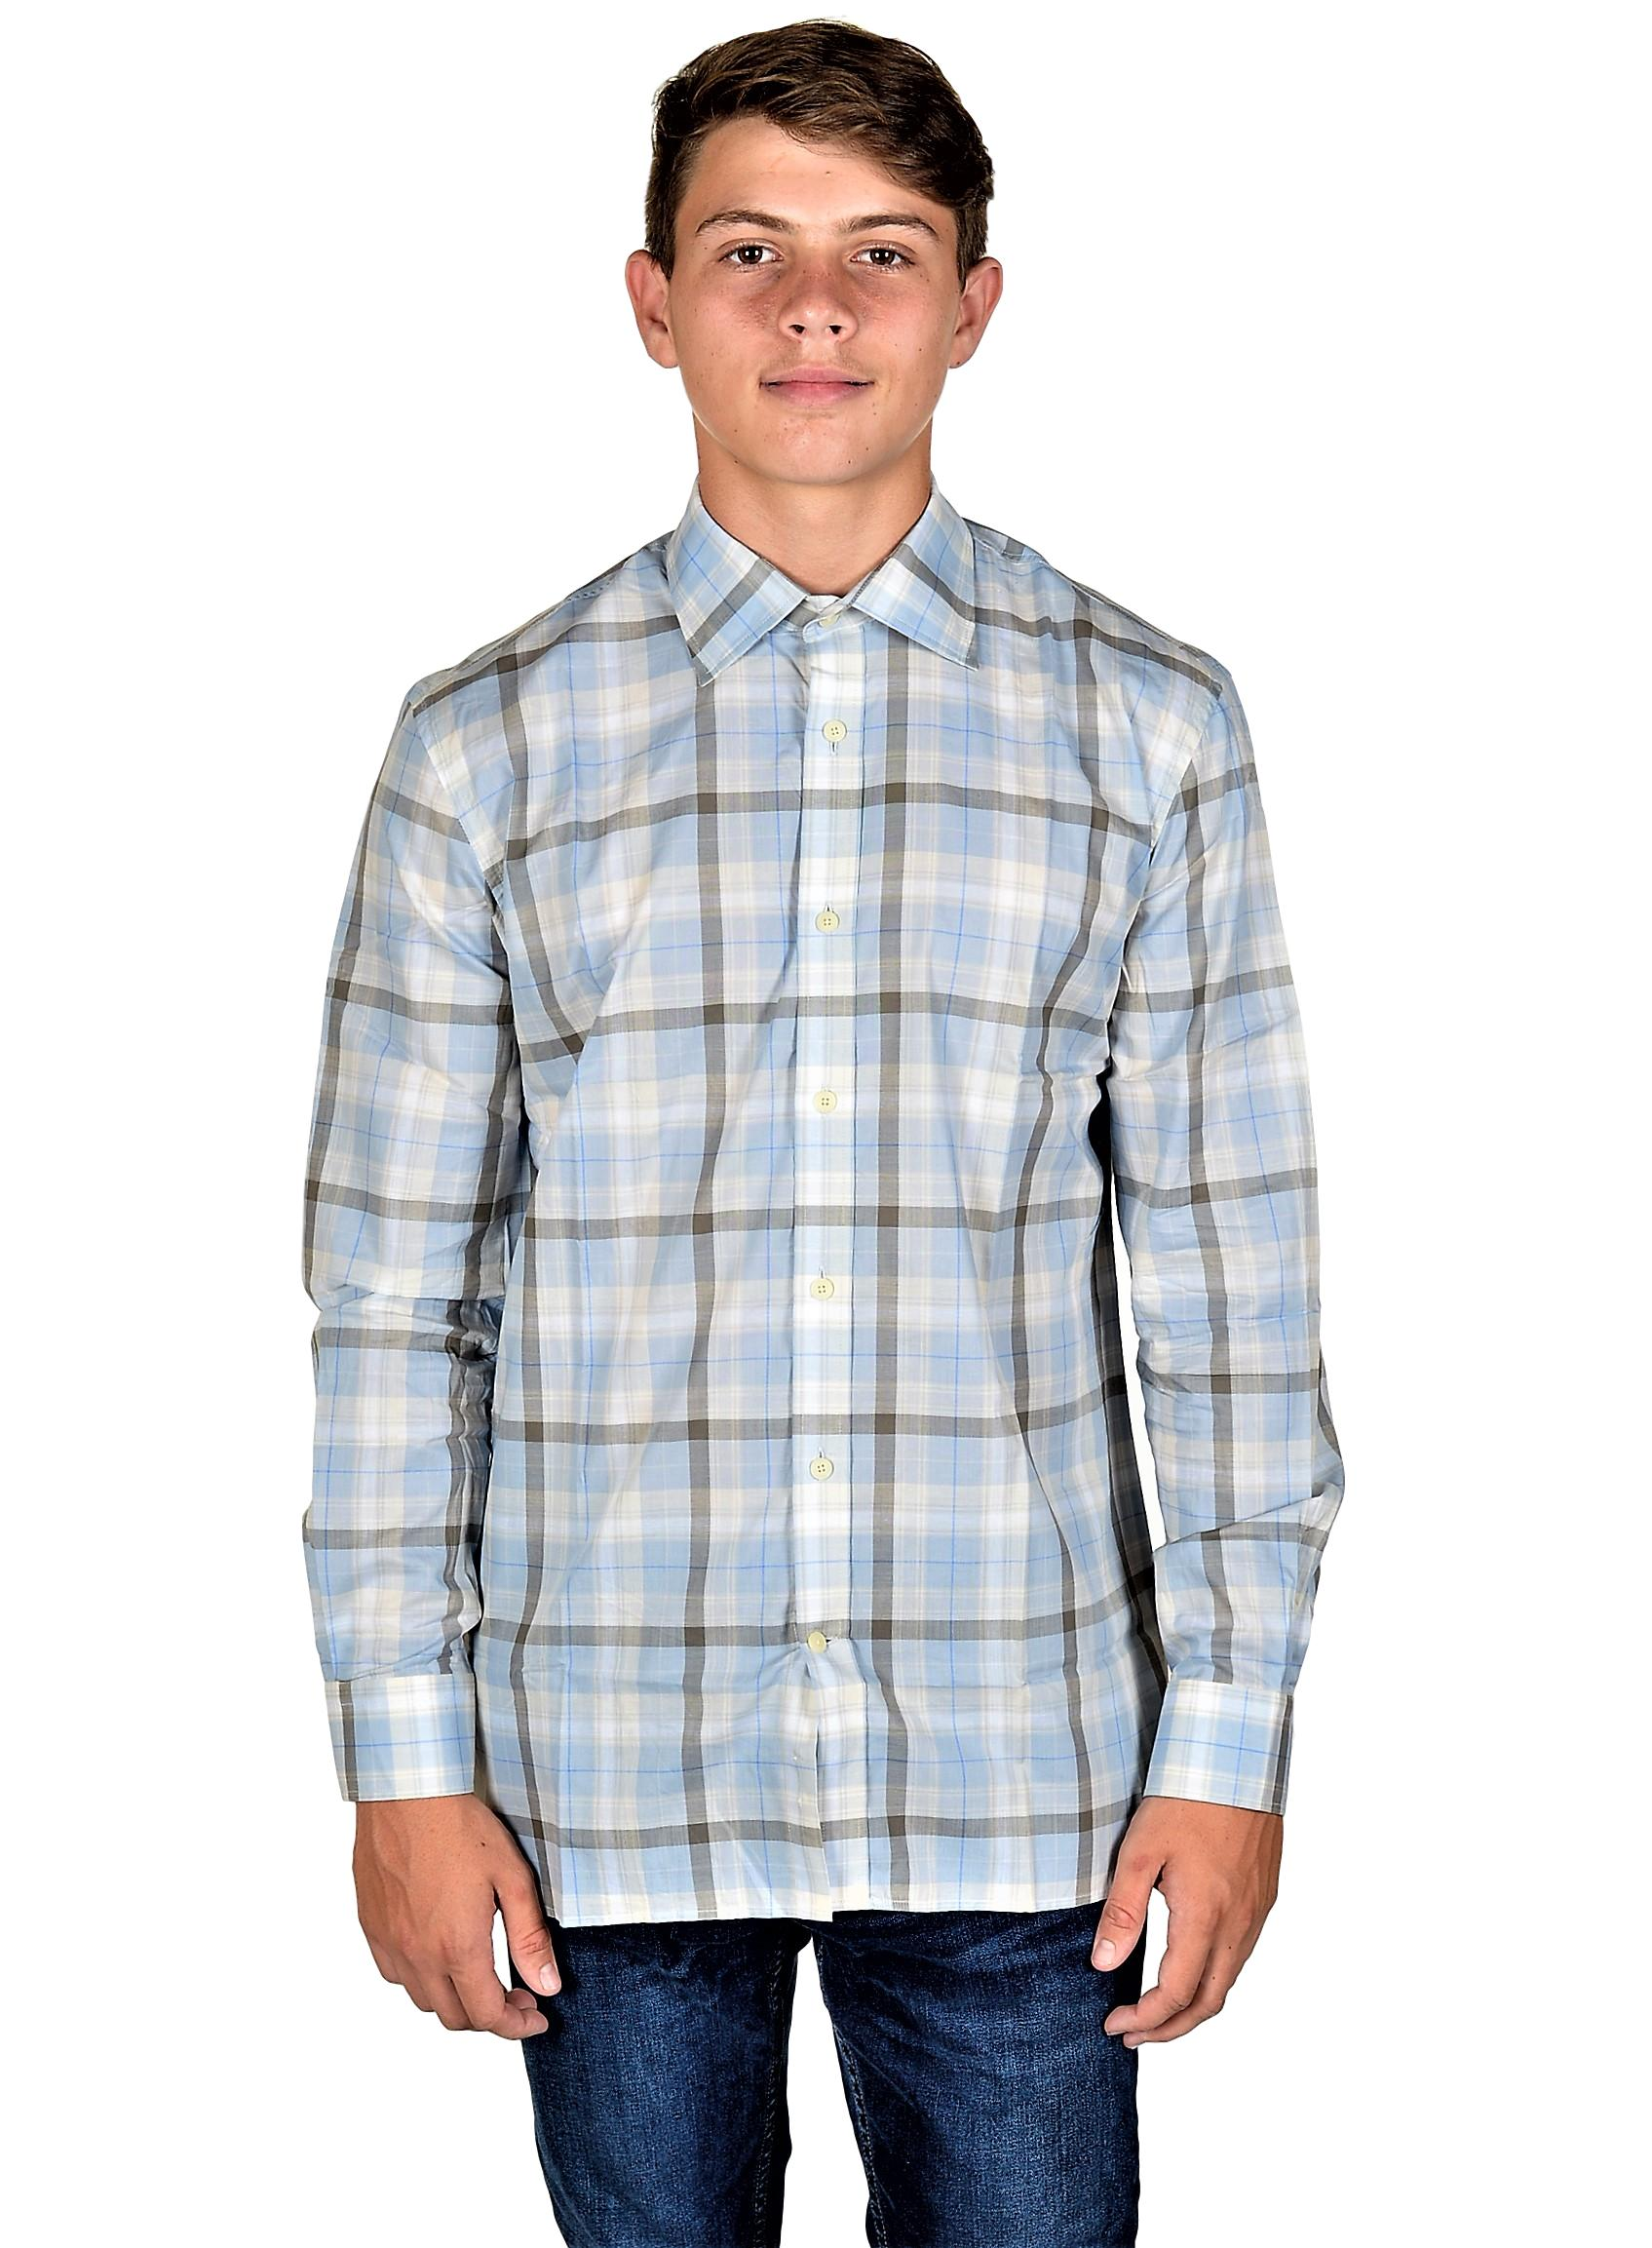 Modern Regular Fit Long Sleeve Shirt Hickey Freeman Men/'s Button Down Shirt